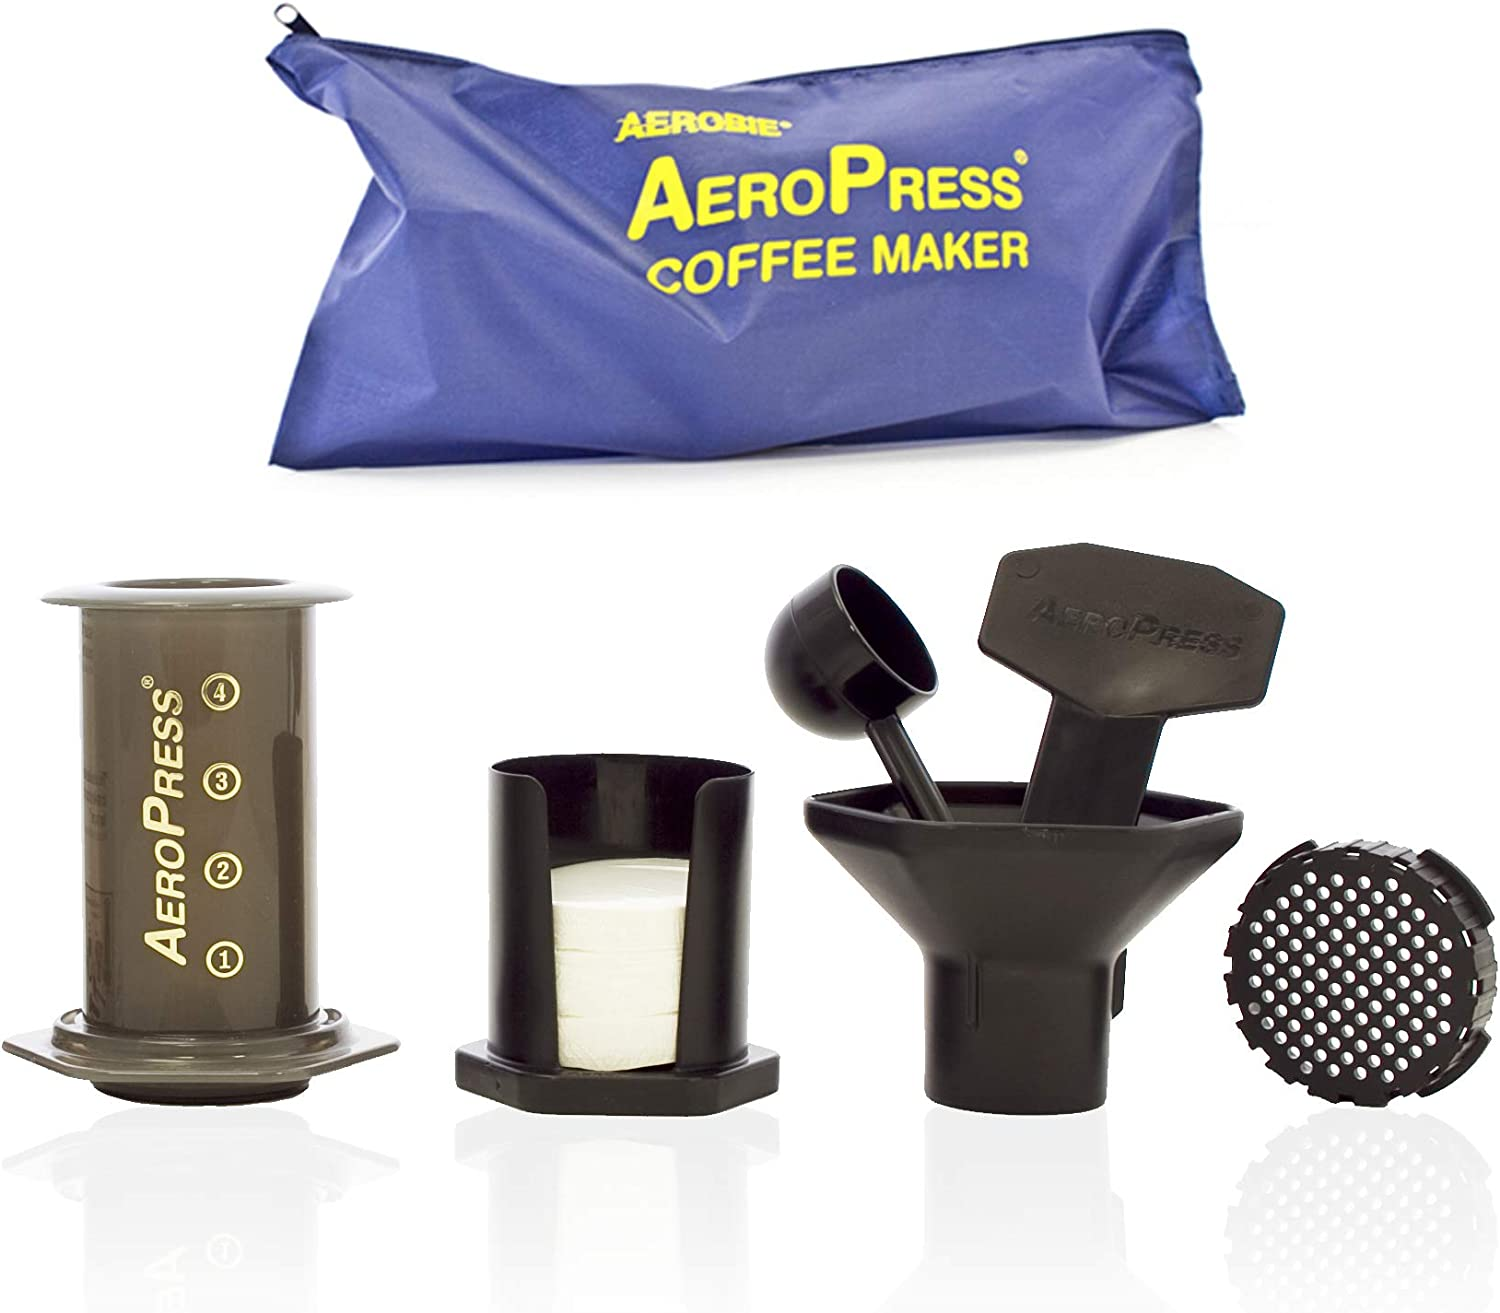 AeroPress 82R08 Coffee Maker with Tote image 1